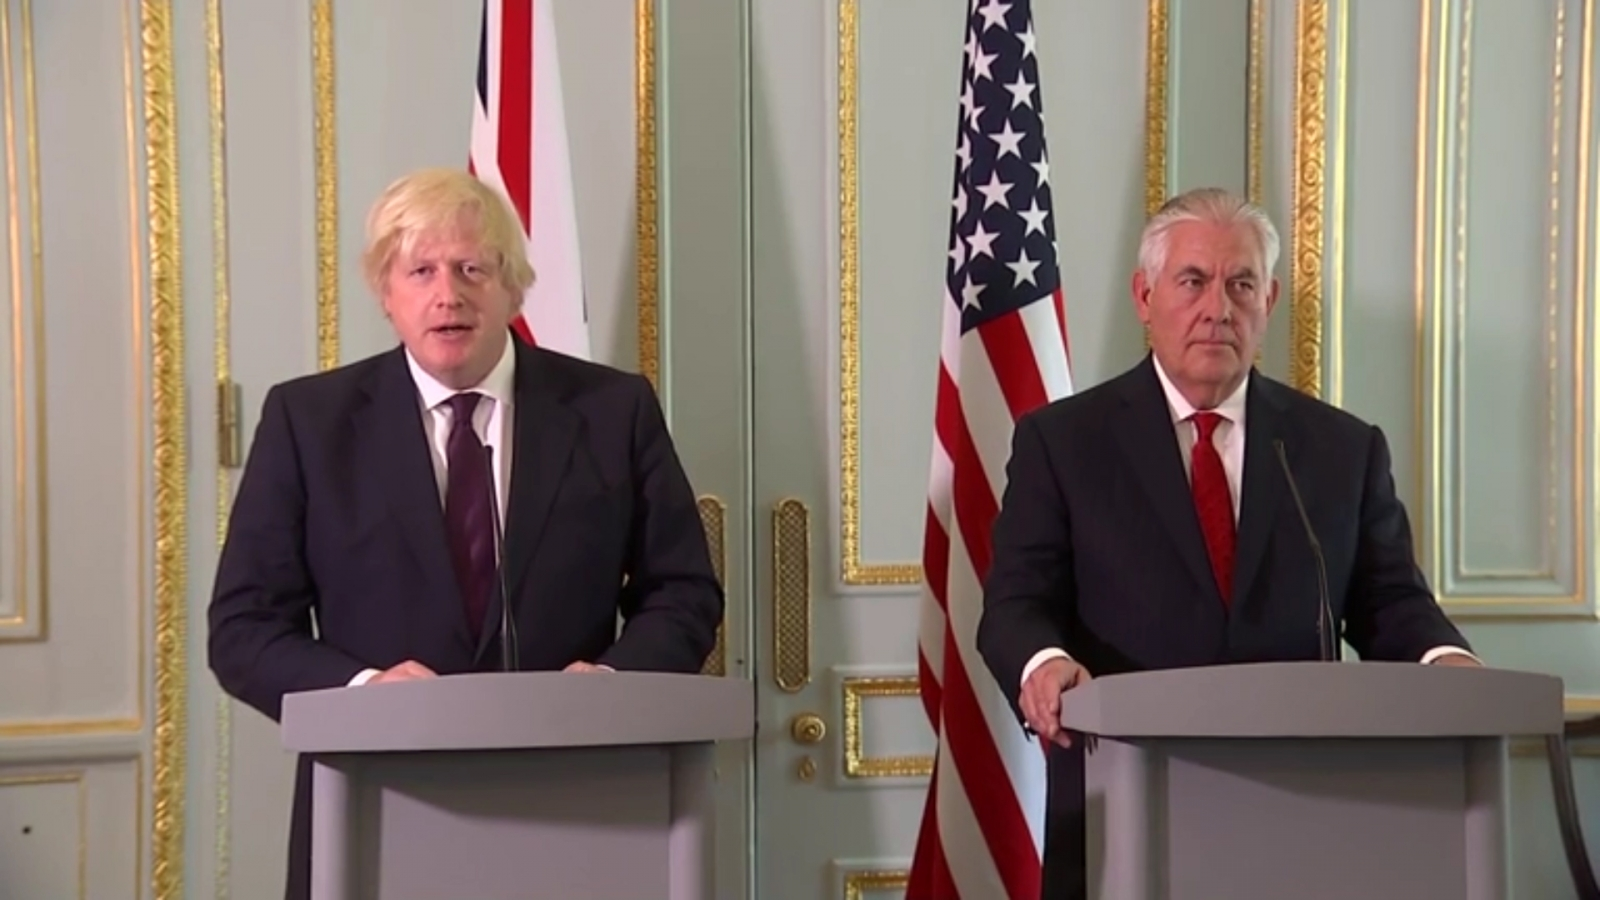 rex-tillerson-u-s-takes-full-responsibility-for-manchester-attack-leaks